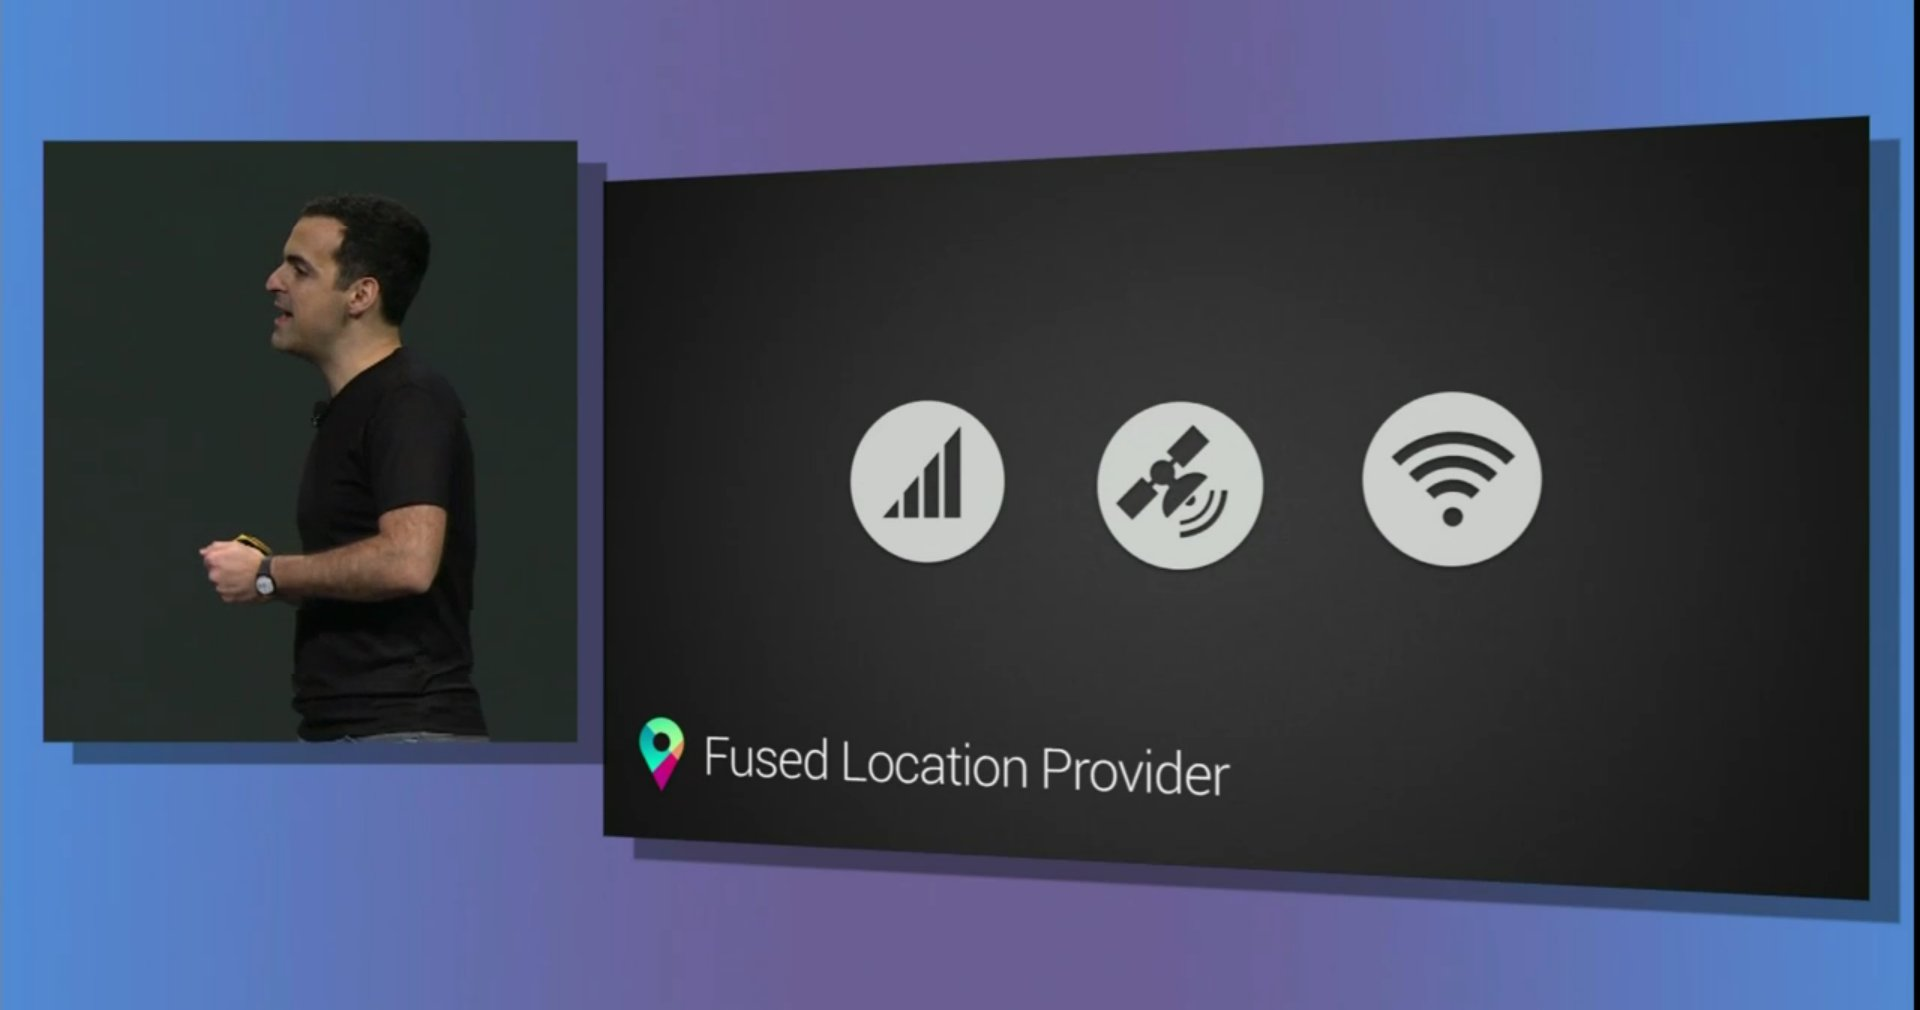 fused location provider android